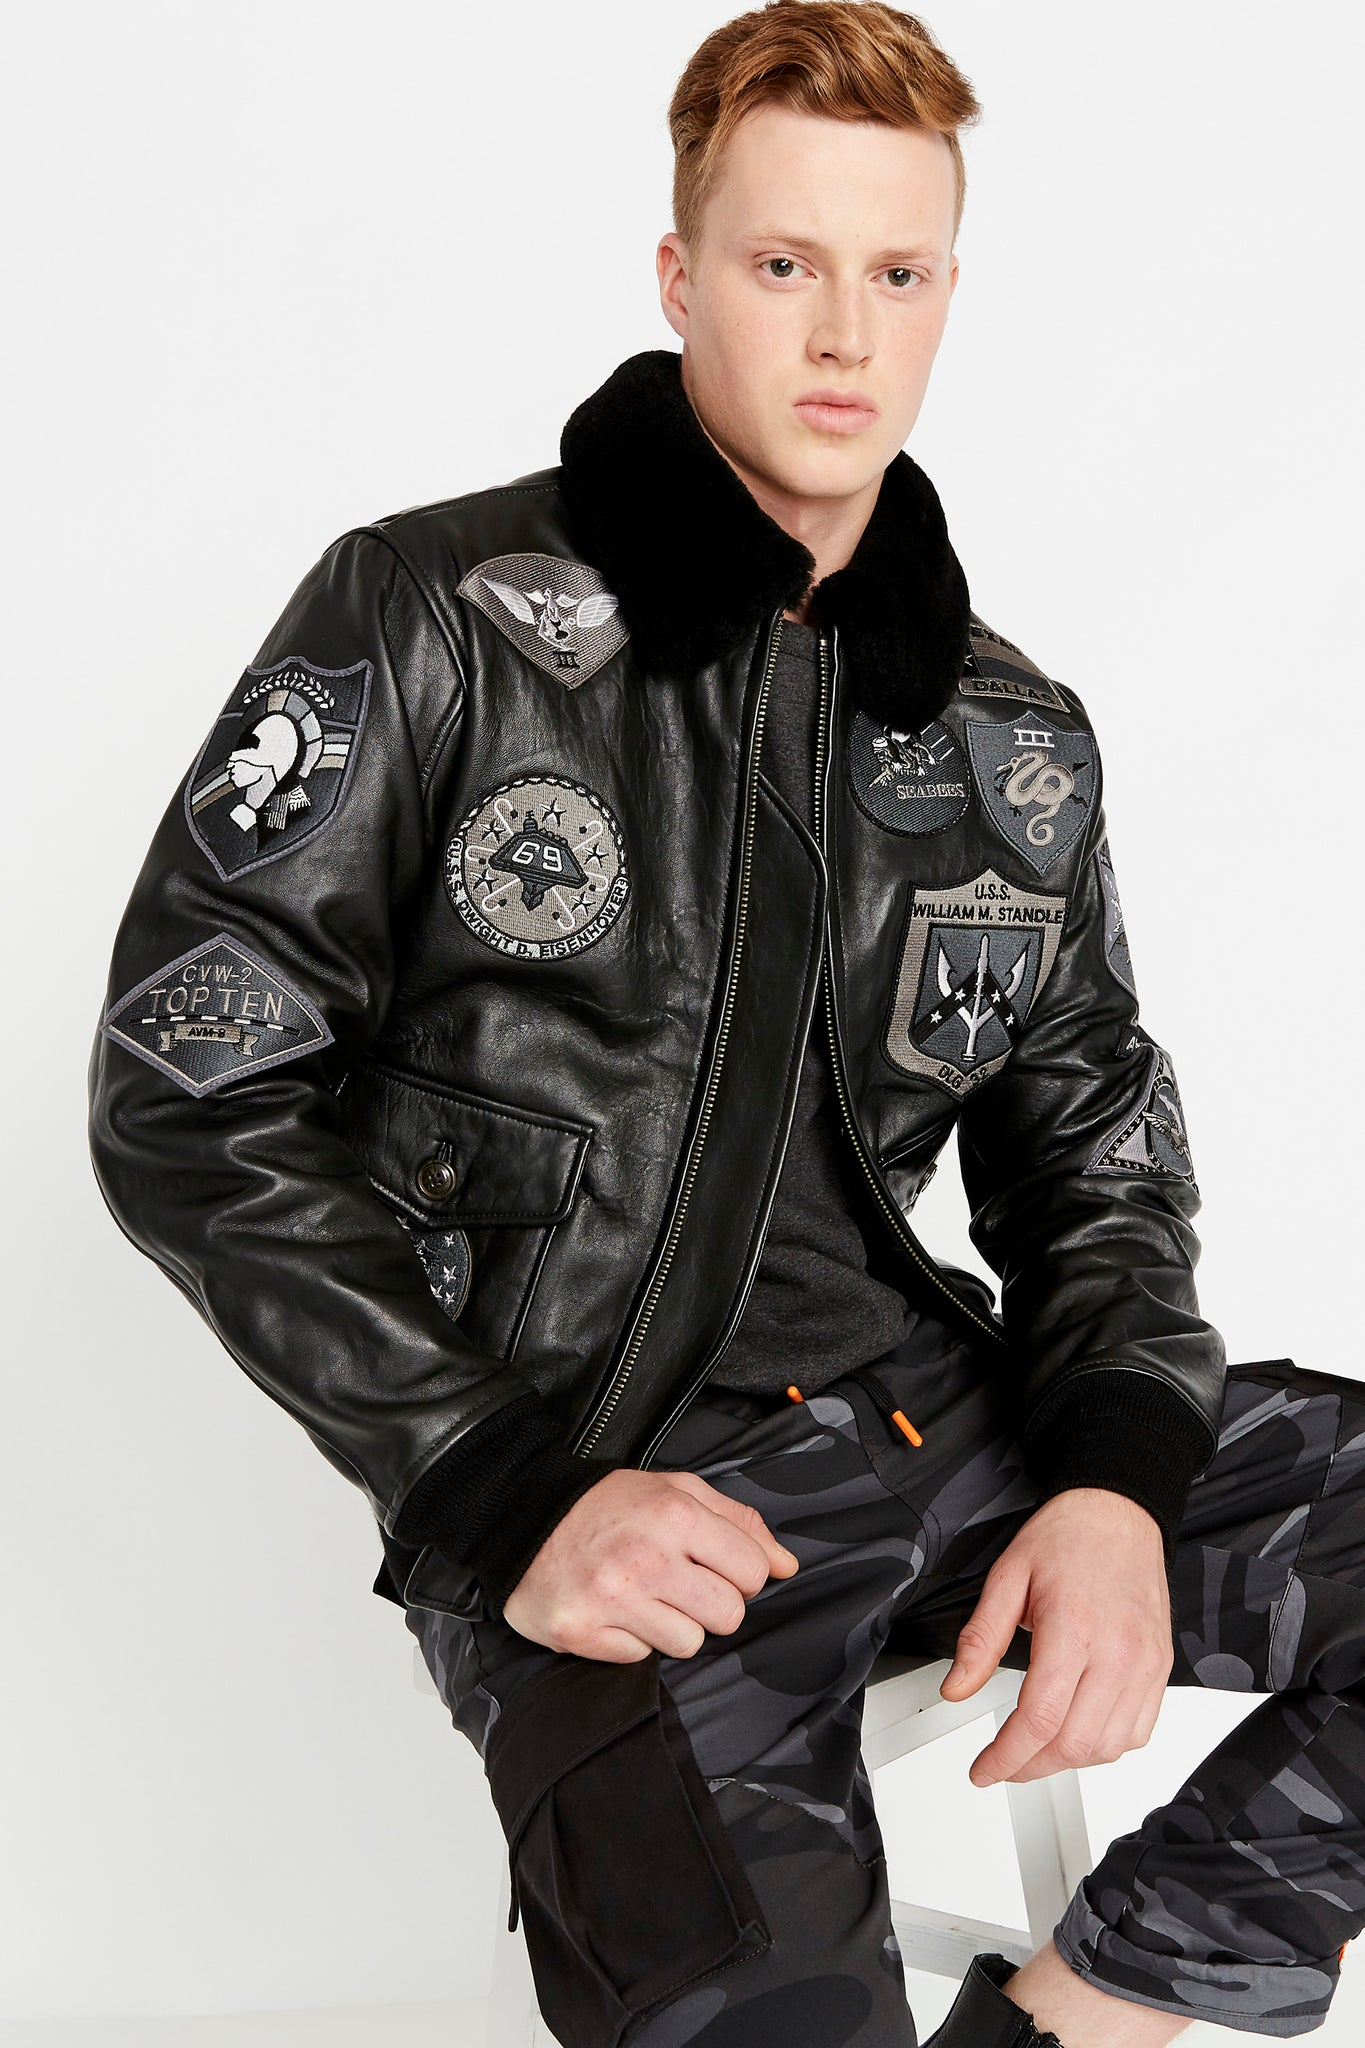 Men sitting wearing Top Gun G-1 leather jacket with shearling fur lined collar and blackout Top gun patch design on bodice.